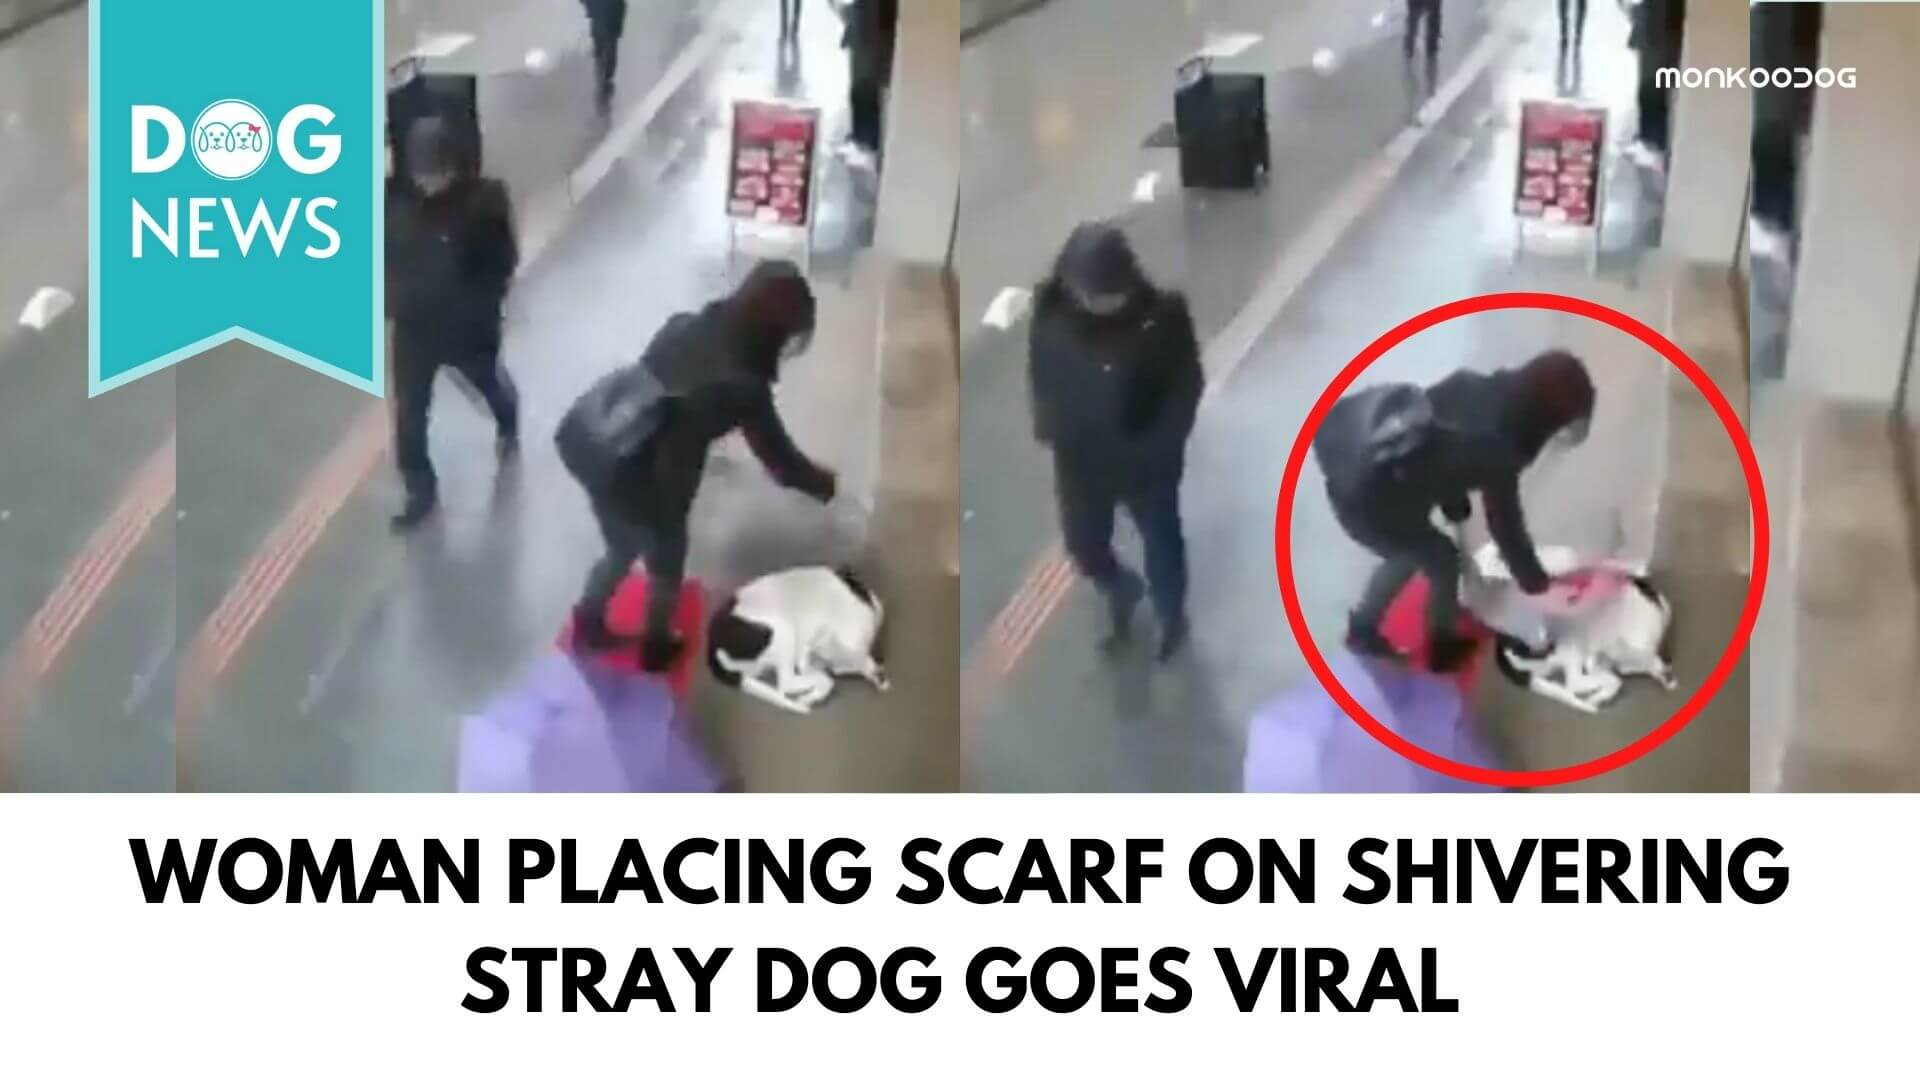 Woman Placing Scarf On Shivering Stray Dog Goes Viral On Social Media